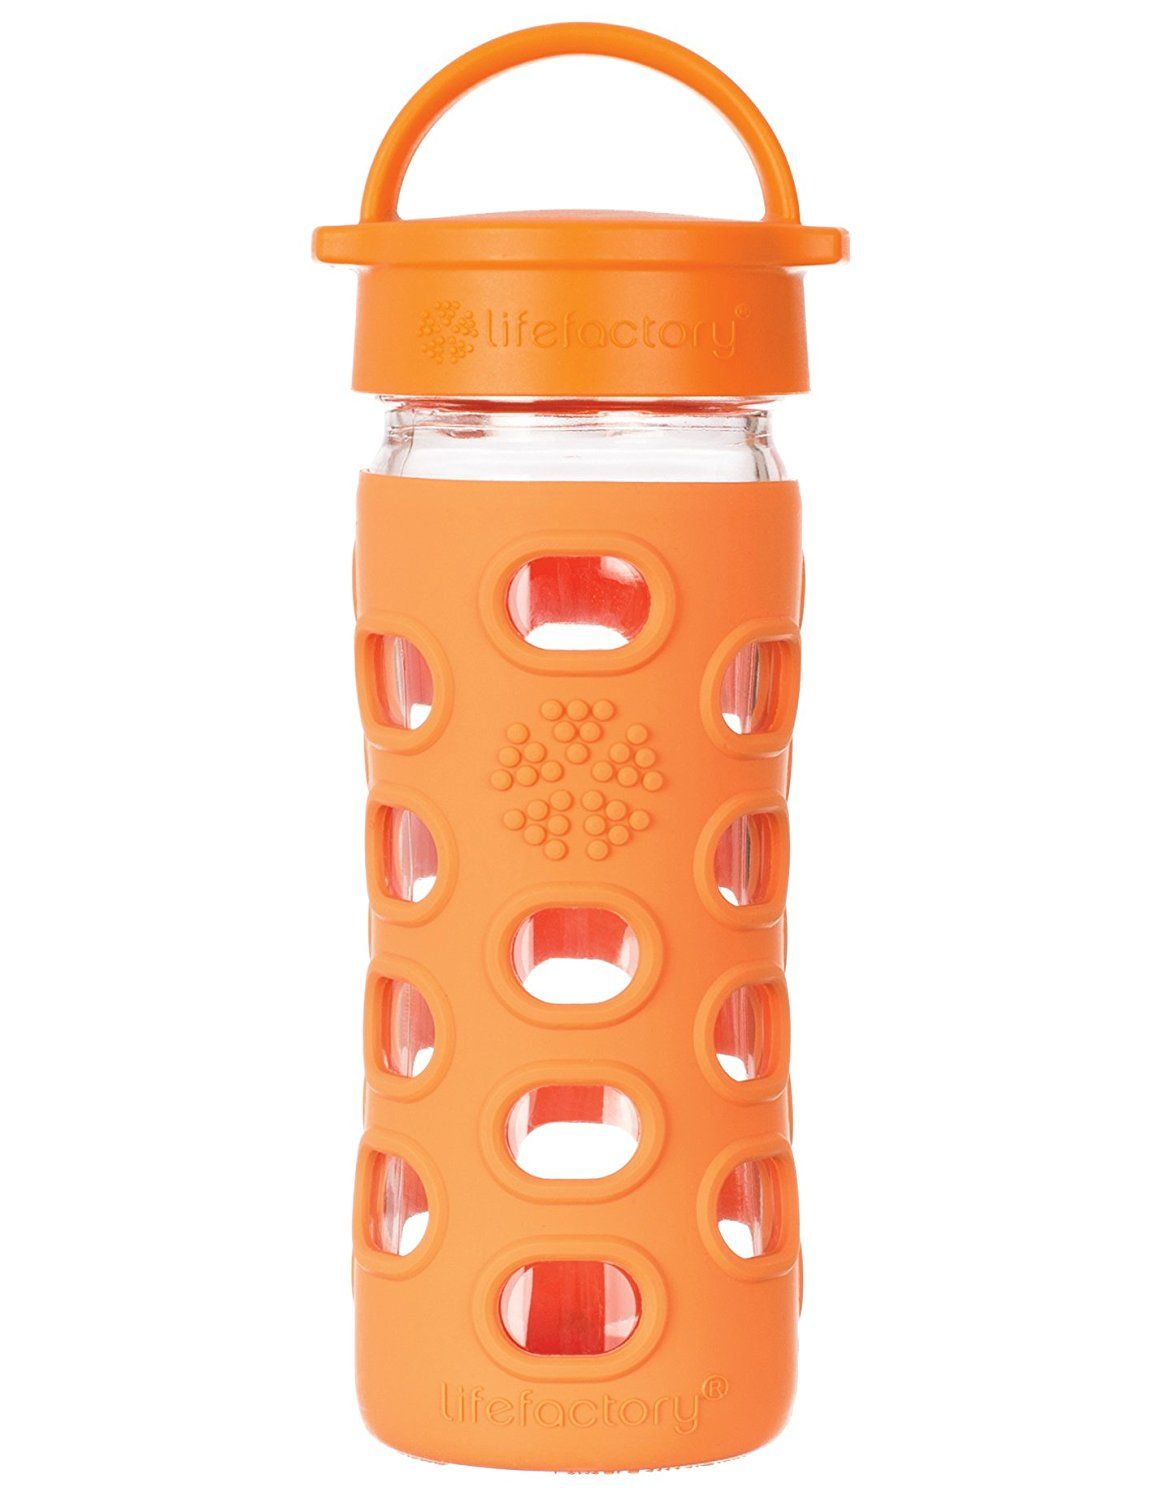 Lifefactory 12 Ounce Bpa Free Glass Water Bottle With Leakproof Cap Silicone Sleeve œaeorange C Fancy Water Bottles Bpa Free Baby Bottles Glass Baby Bottles